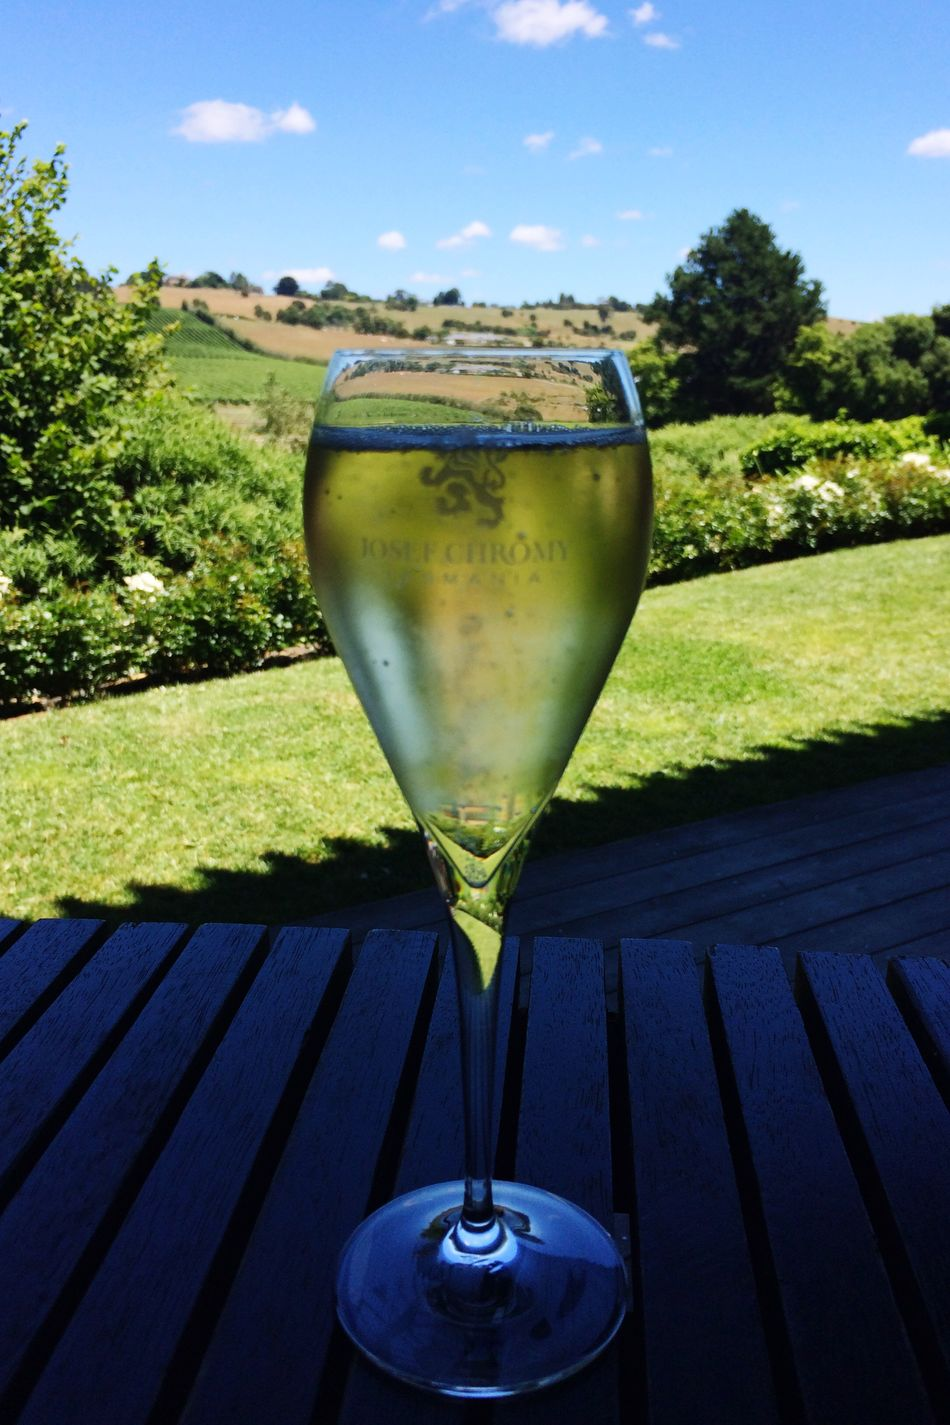 No People Day Tasmania Winery Bubbles Champagne Champagne Glasses Sun Refreshment Outdoors Drinking Glass Wineglass Drink Nature Beauty In Nature Sky